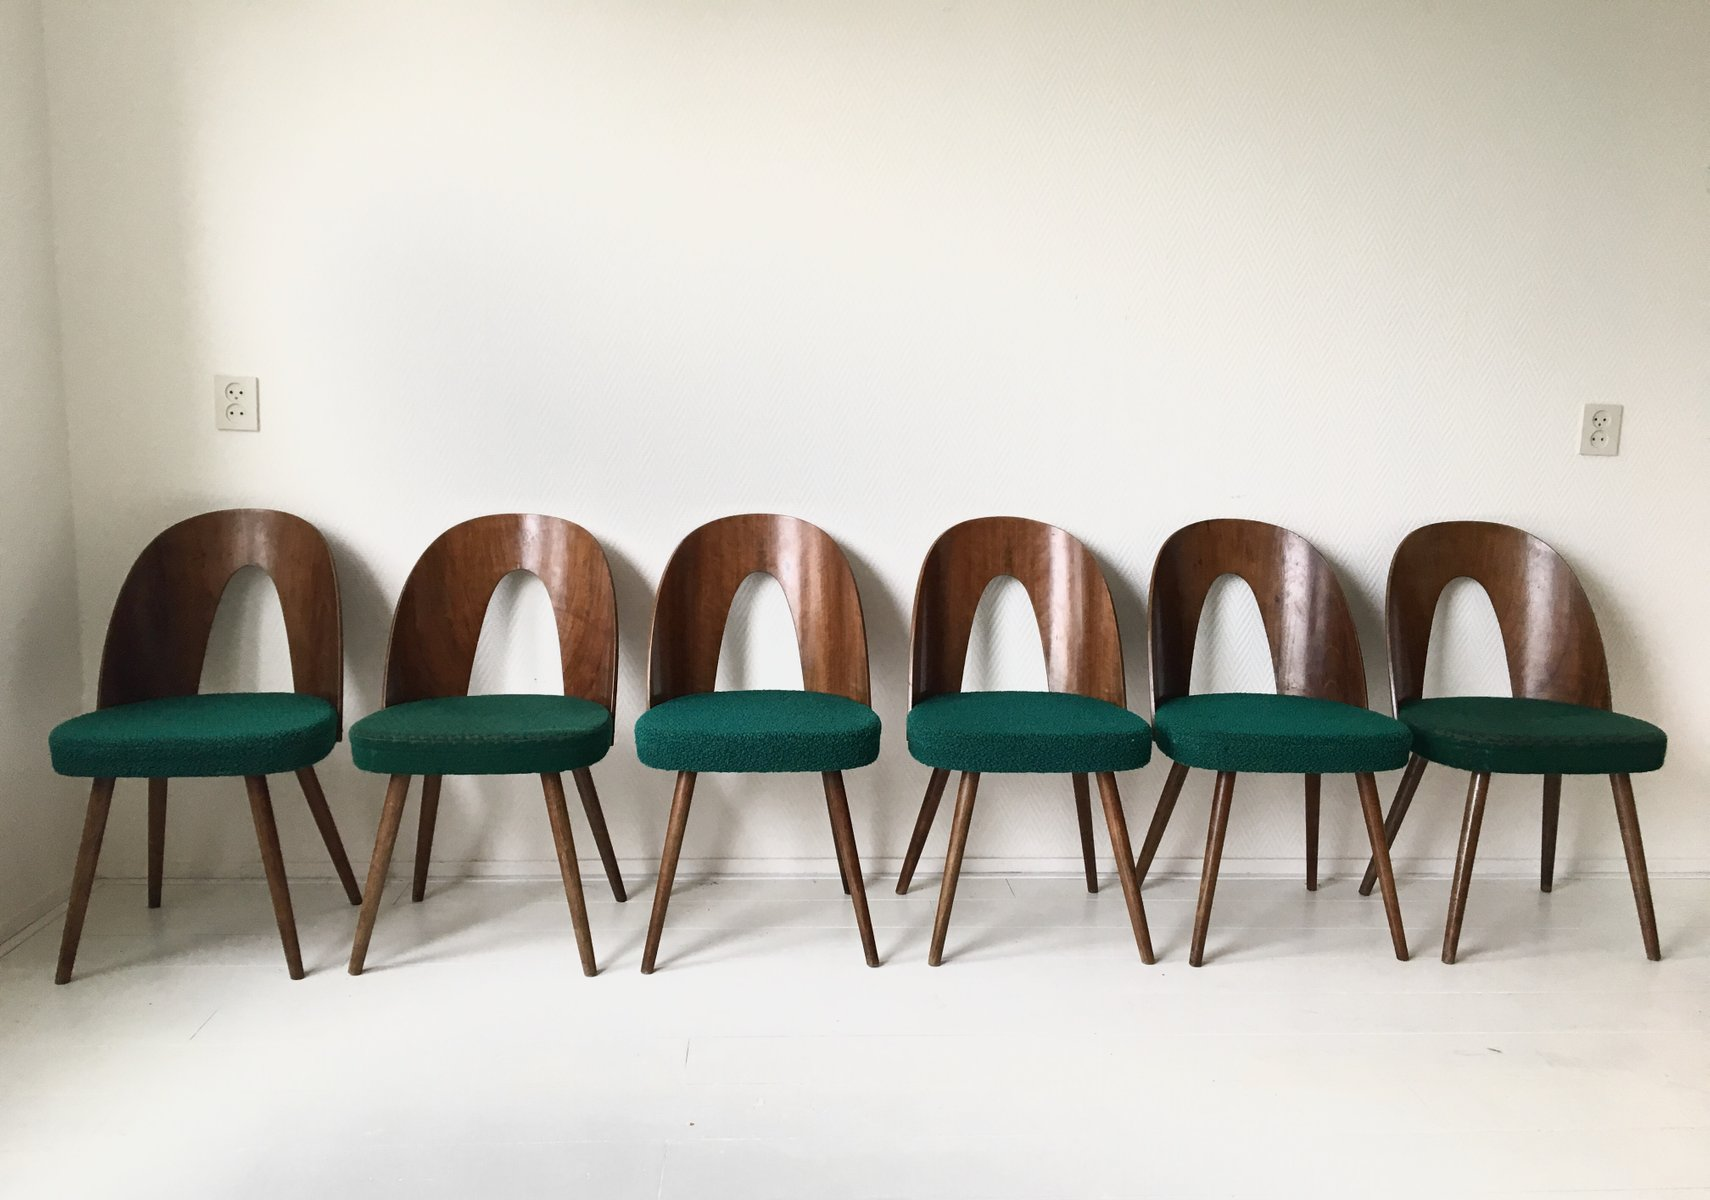 Green Dining Room Chairs By Antonin Suman For Tatra 1960s